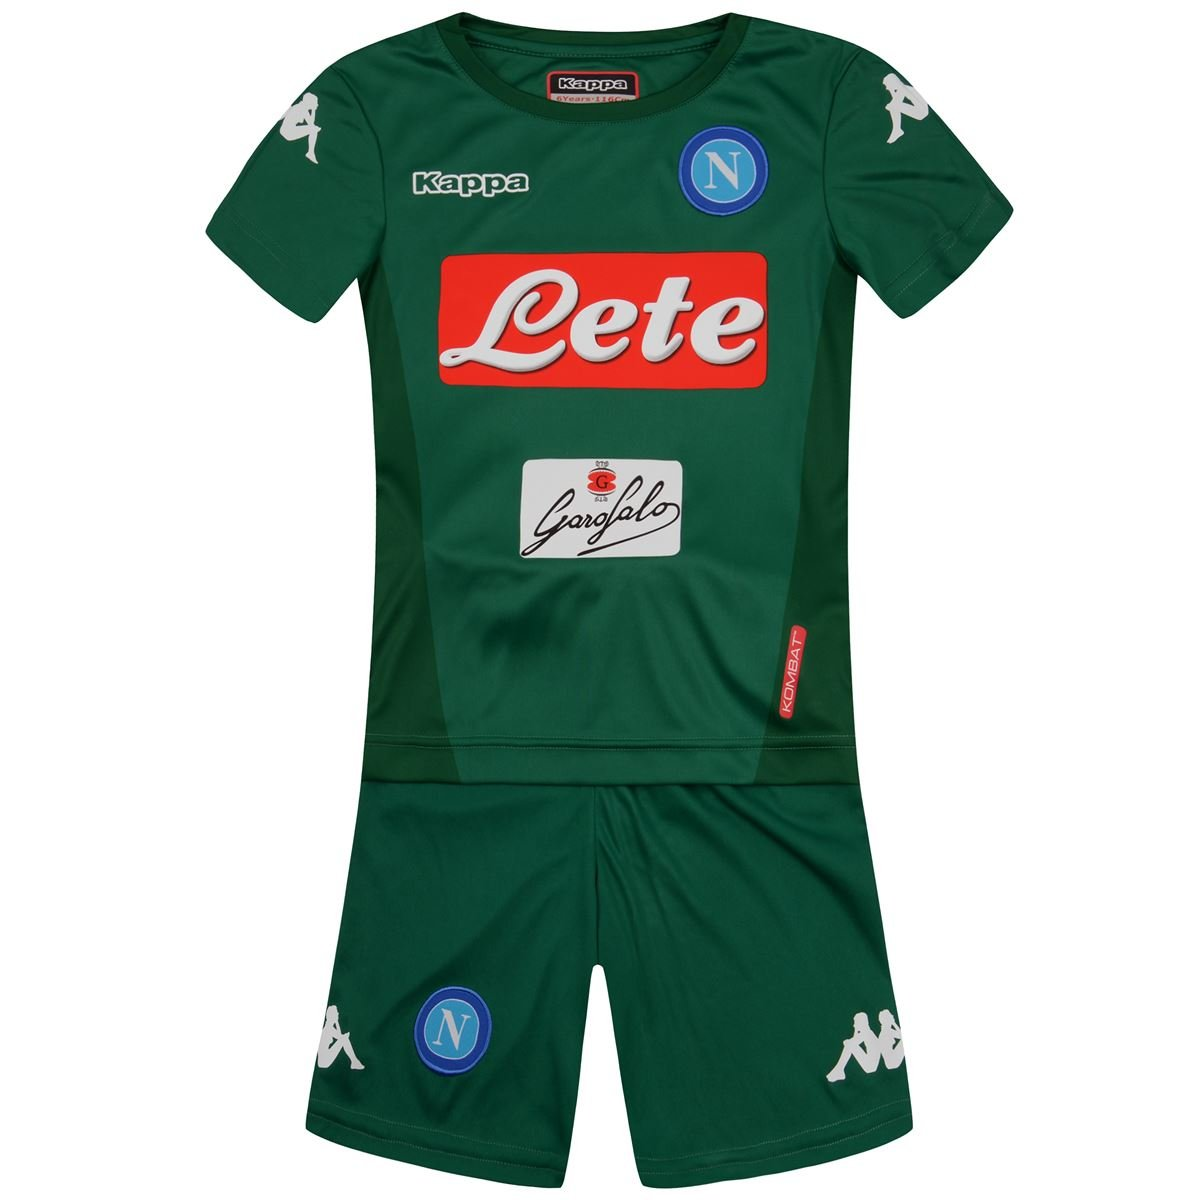 Kappa - Complete - Kombat Kit Naples - Children - Green - 4Y  4 anni  (altezza 101-107cm)  Amazon.co.uk  Sports   Outdoors 05807166a